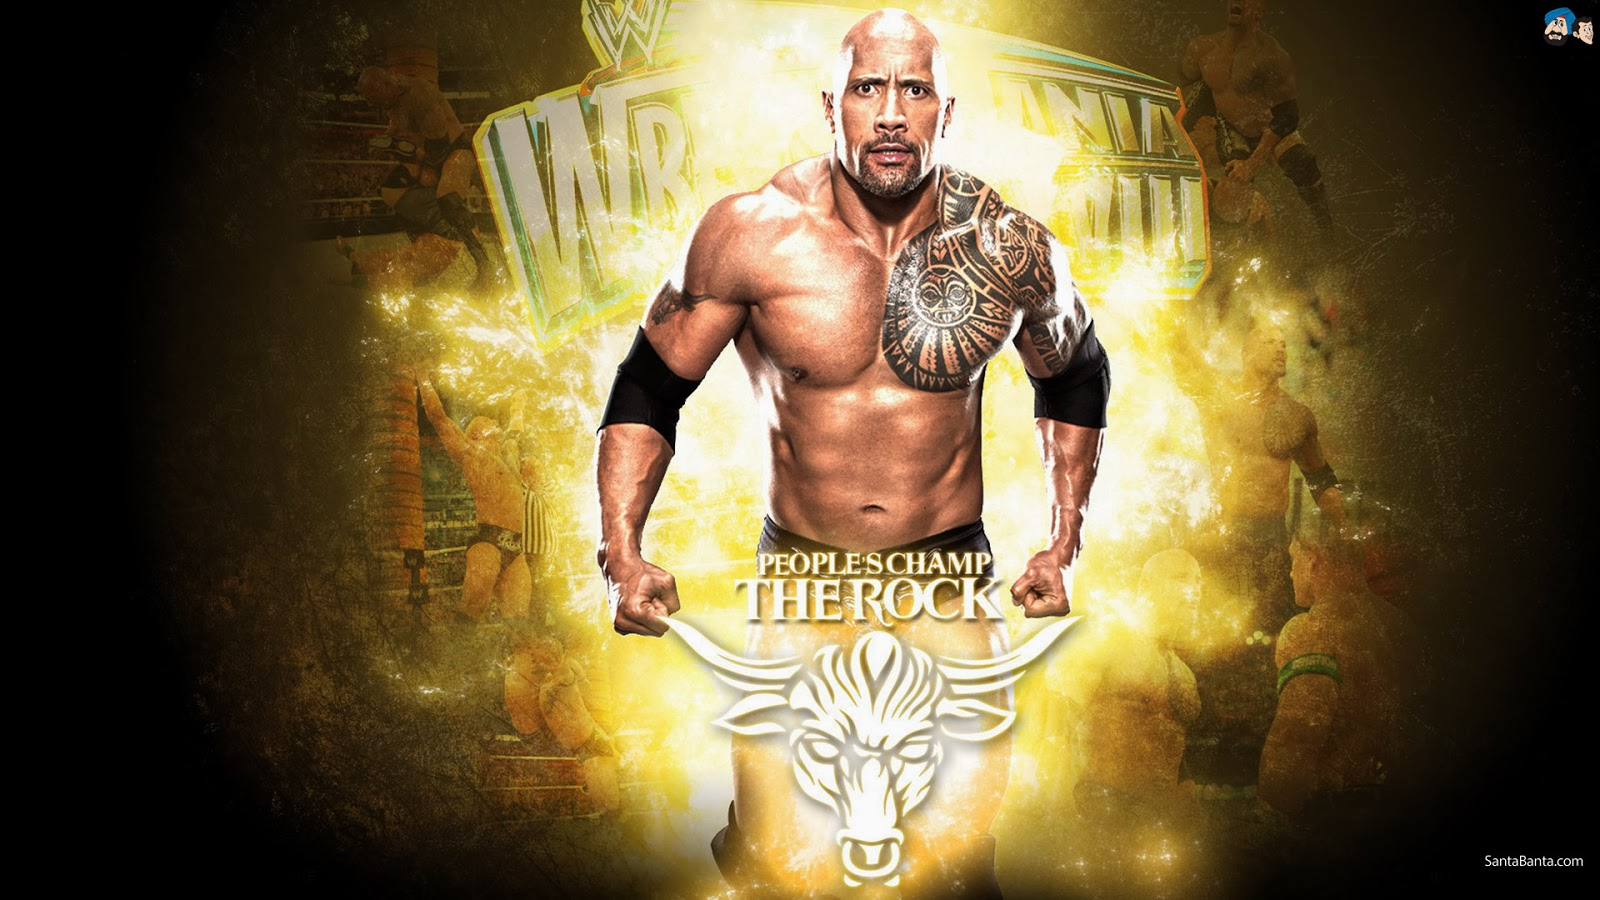 wwe the rock hd wallpaper description wwe the rock hd wallpaper 1600x900